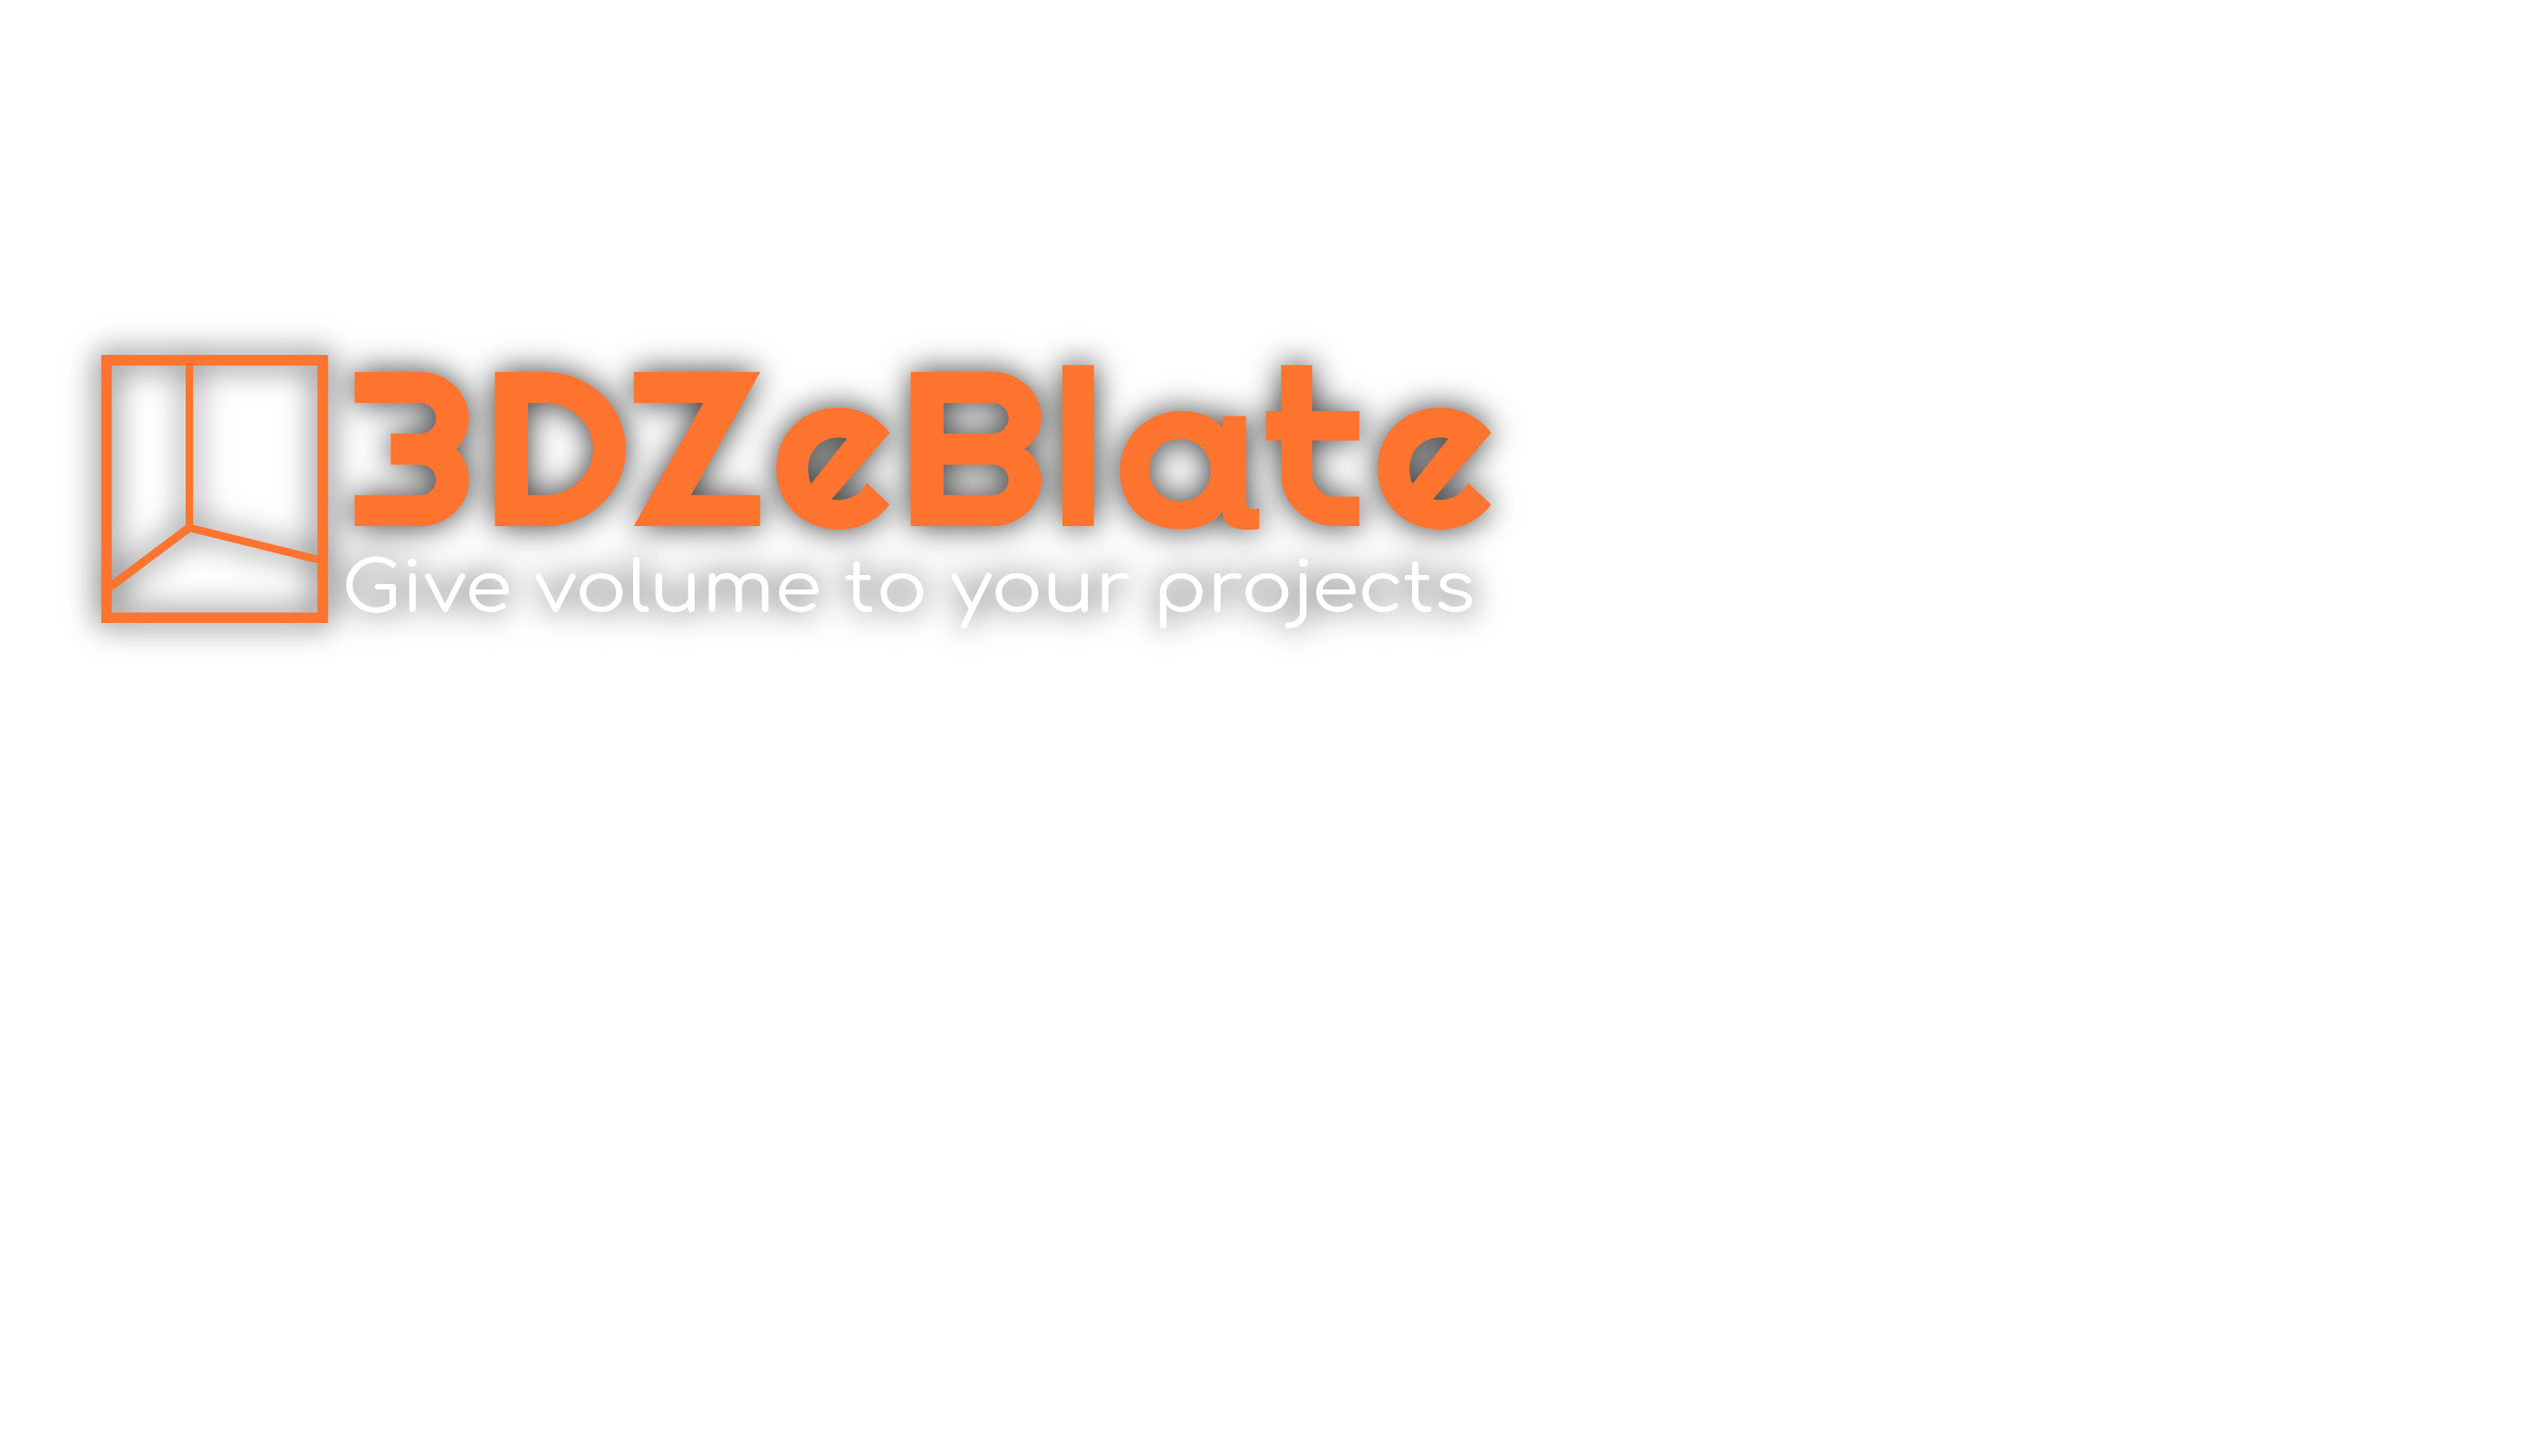 3DZeBlate  guide you in your 3D projects,  from your initial idea to the final product:  3D modeling, 3D rendering and 3D printing.